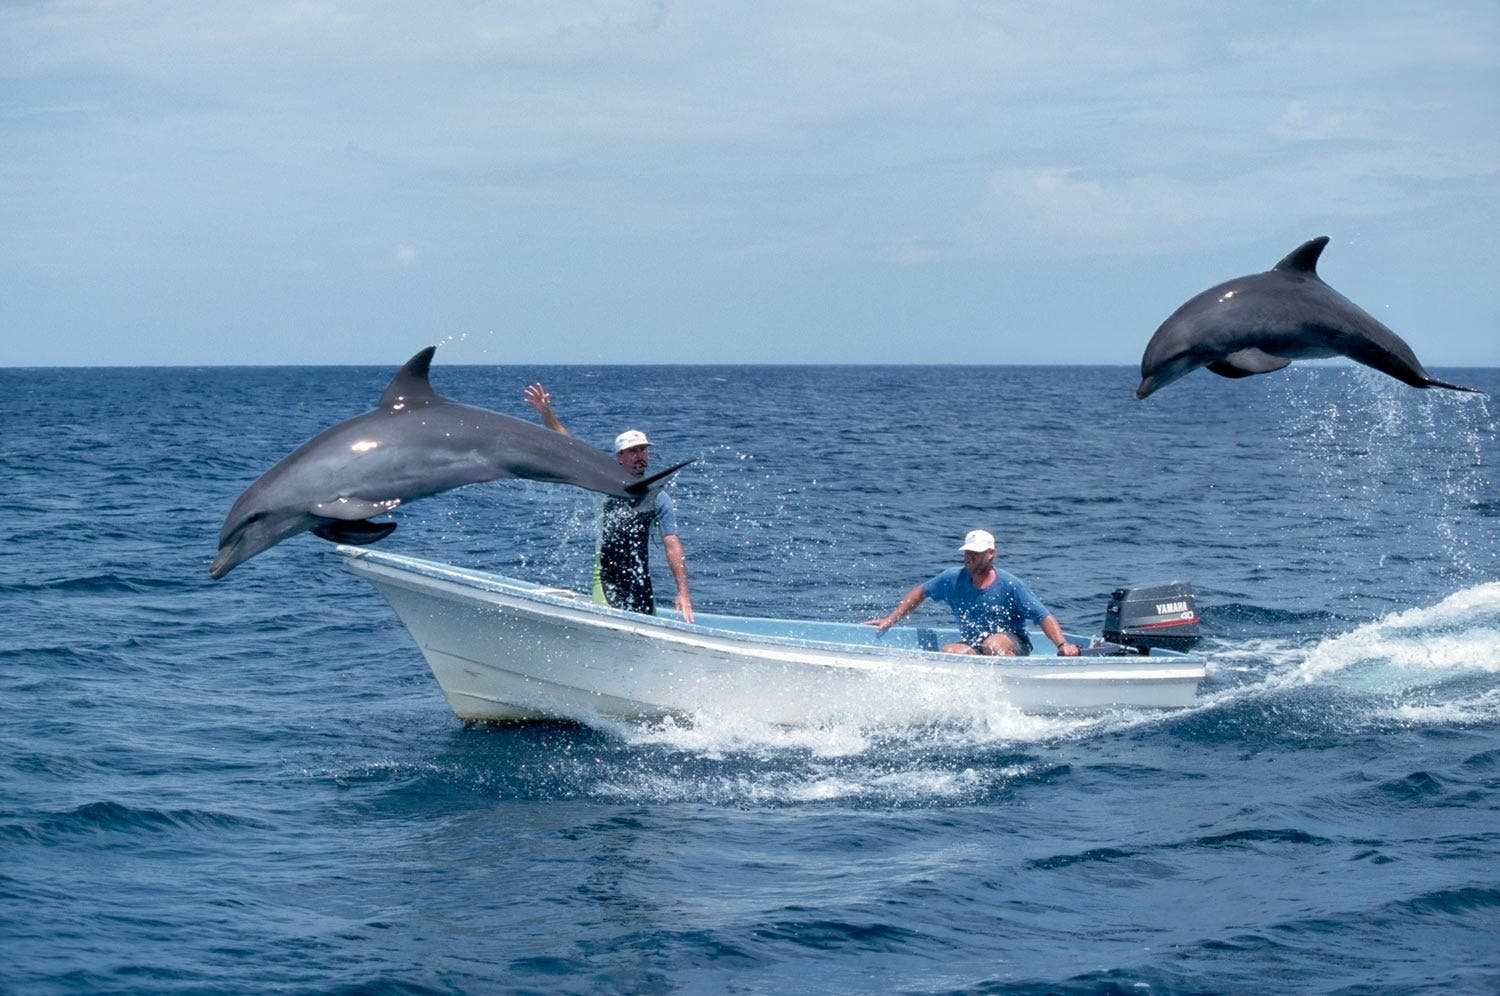 Dolphins playing with men in boat